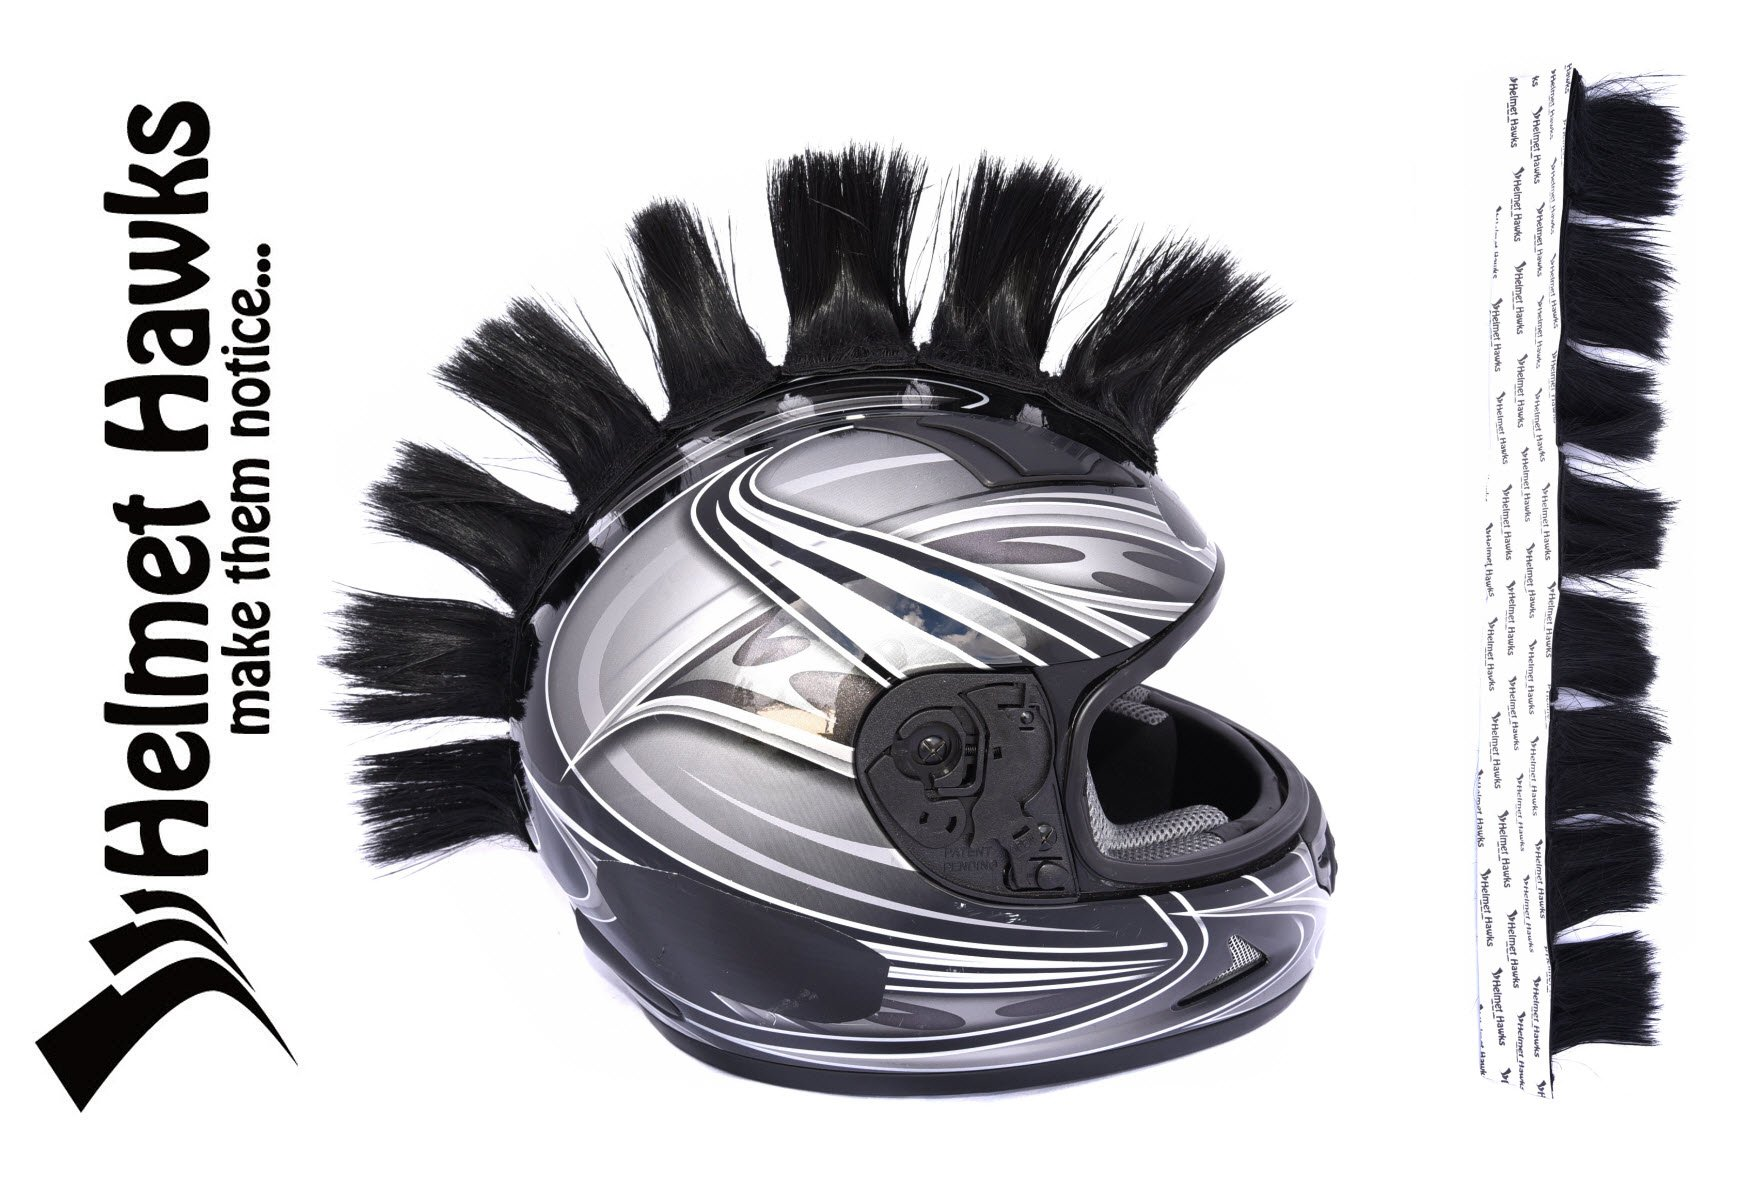 Helmet Hawks Motorcycle Helmet Mohawk w/ Sticky Velcro Adhesive (8) Hair Patches 2'' long x 3'' Tall - Jet Black